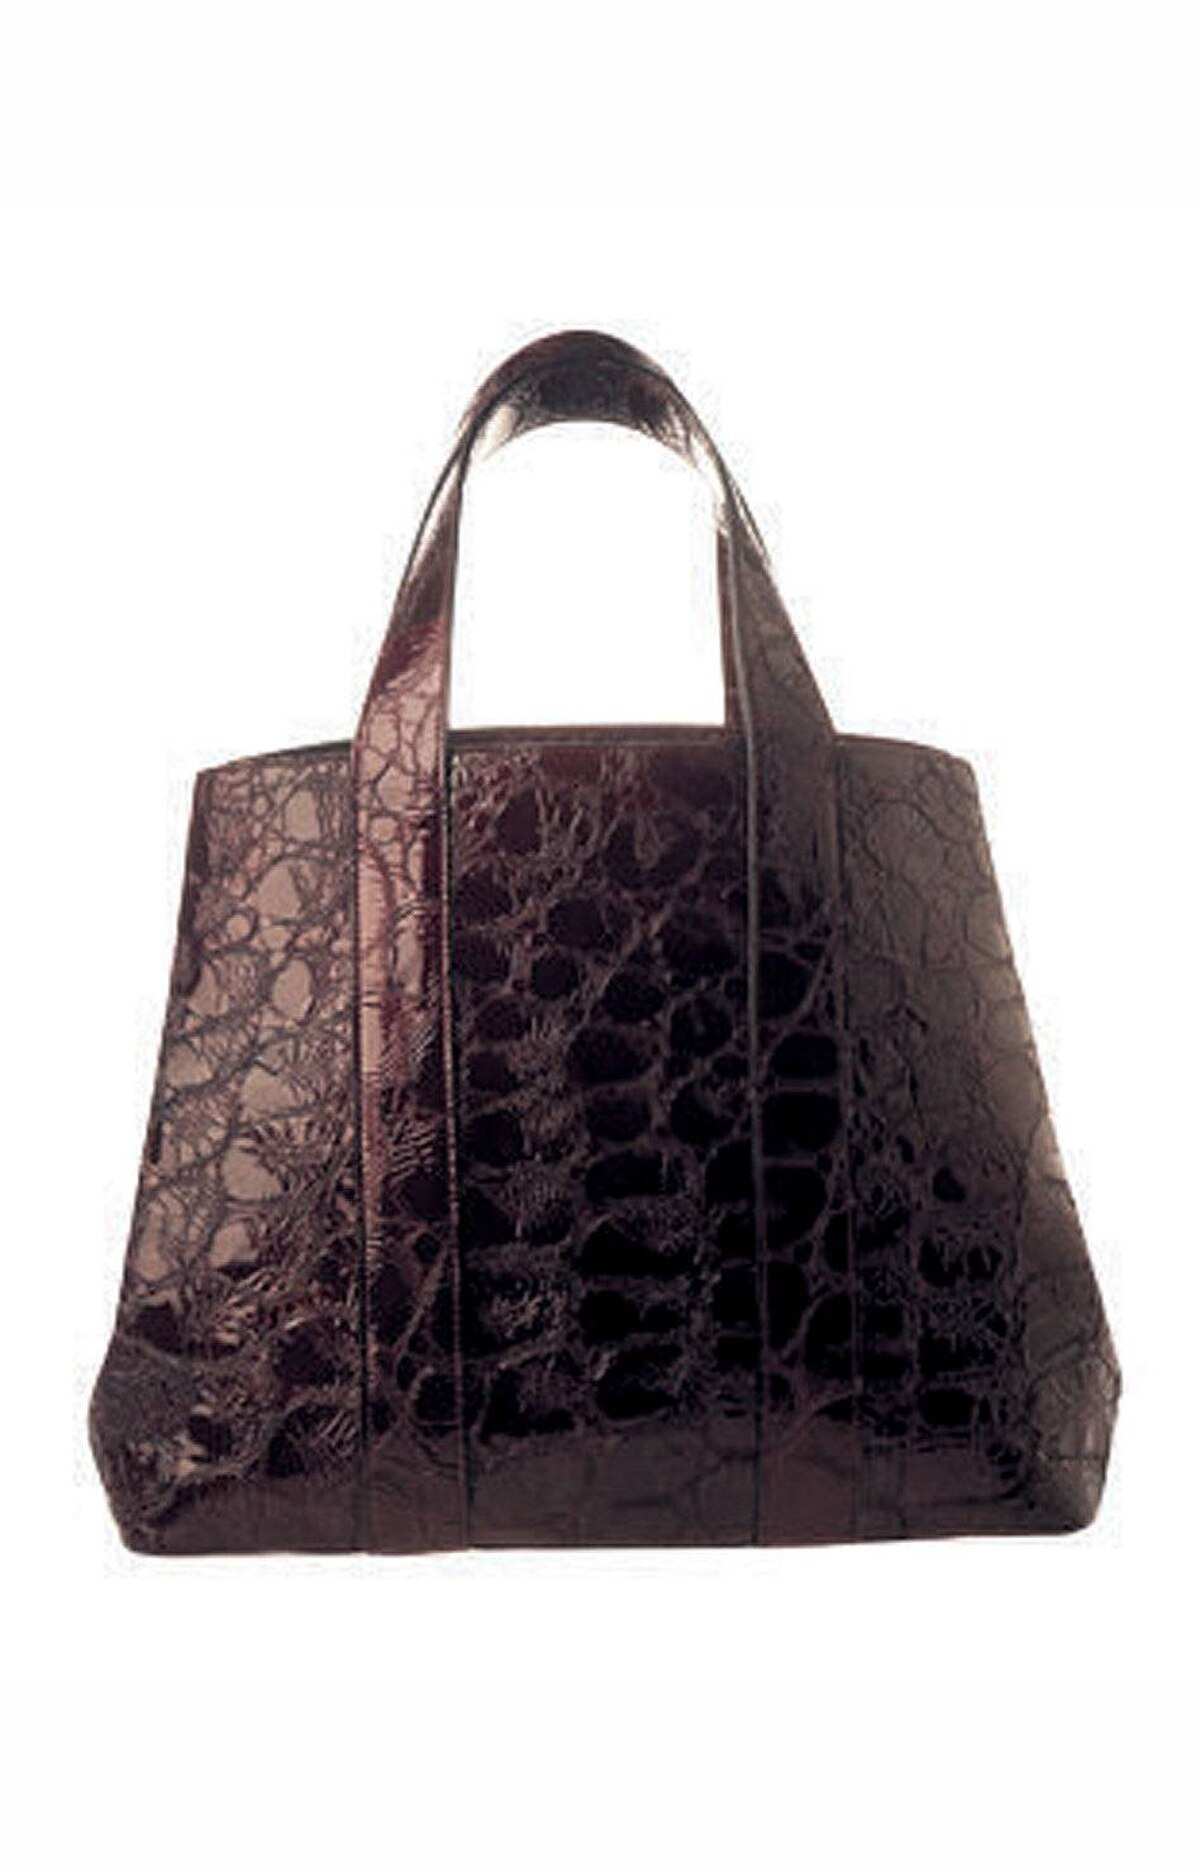 Prune-coloured Alaia alligator purse, $2,730 at The Room (www.thebay.com).